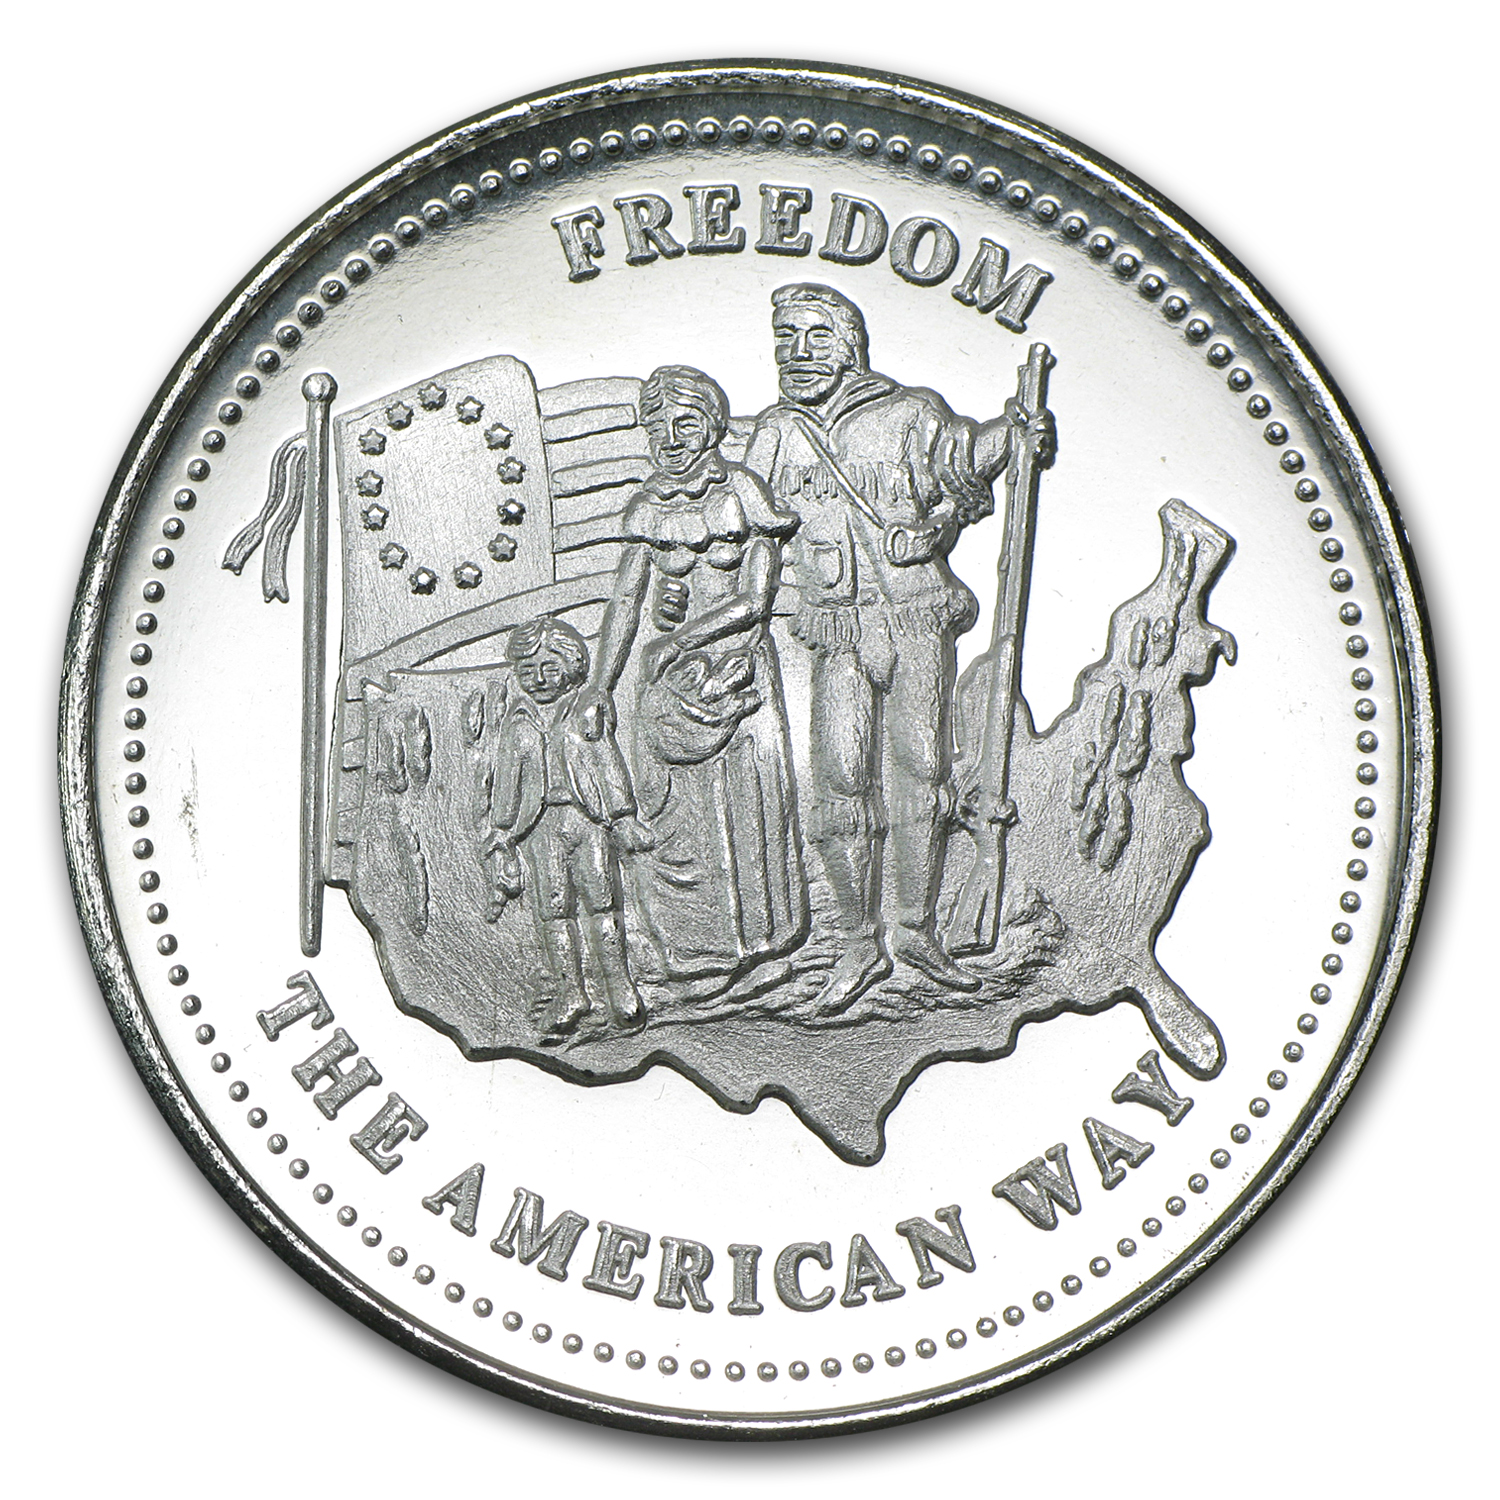 1 oz Silver Rounds - Johnson Matthey (Freedom/The American Way)